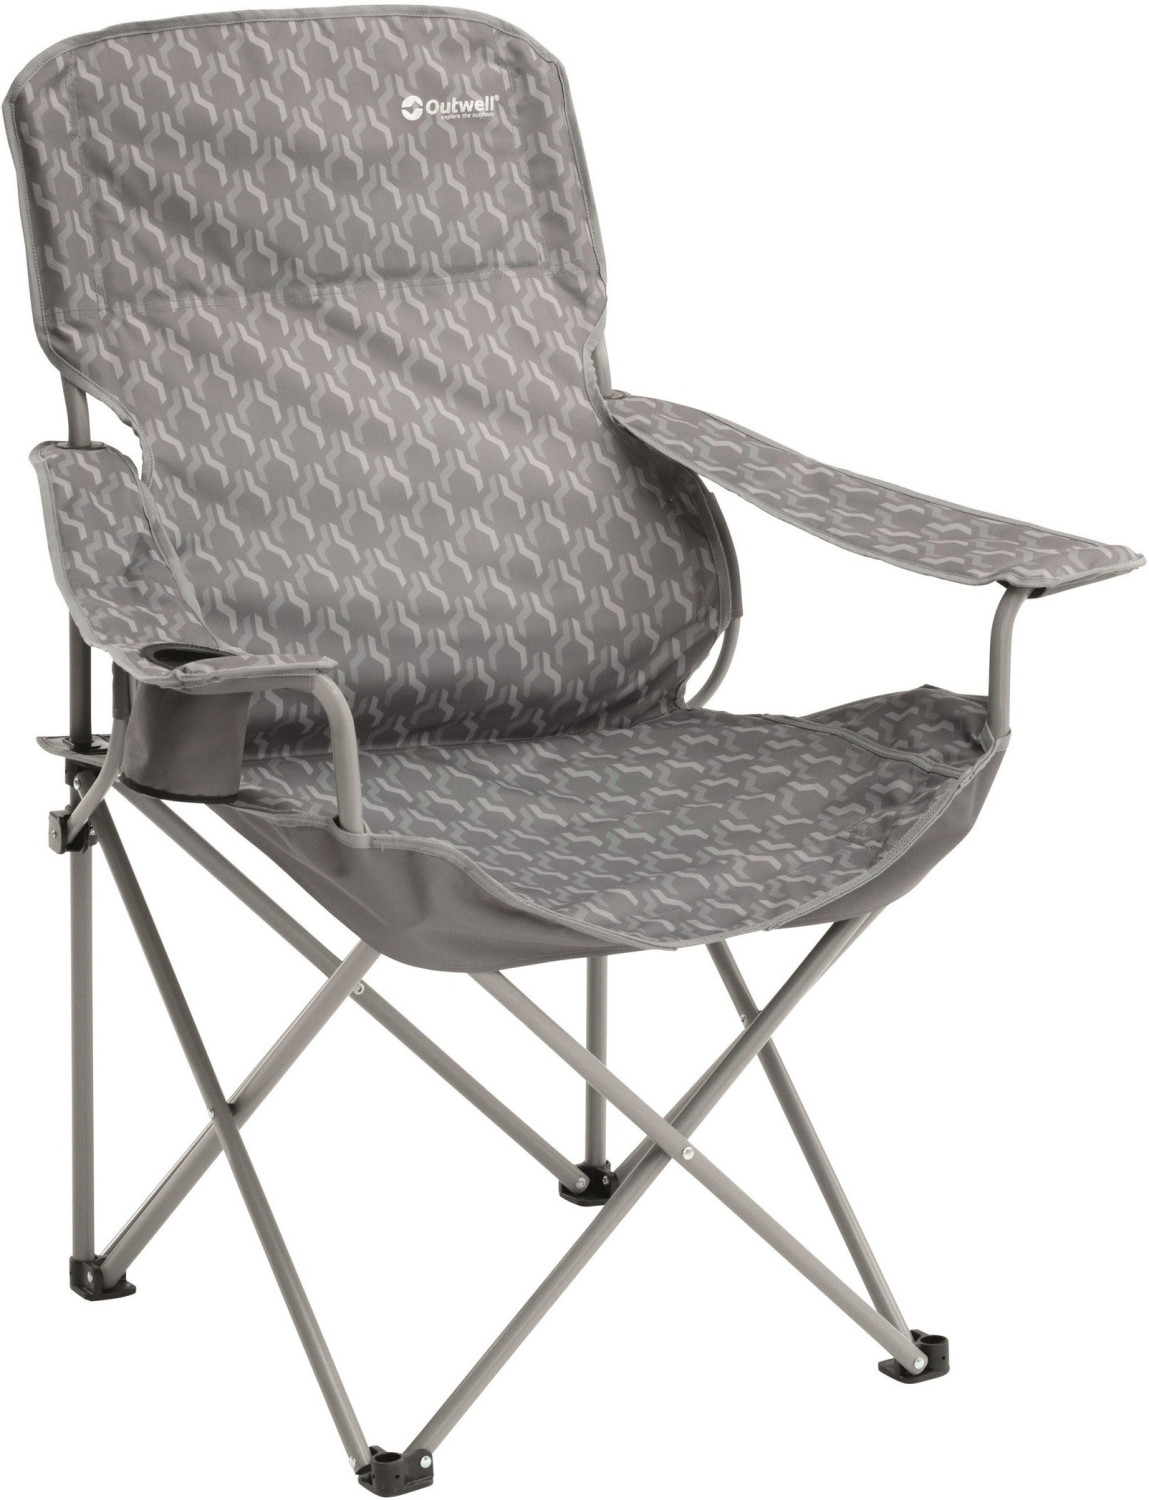 Outwell Black Hills (silver)